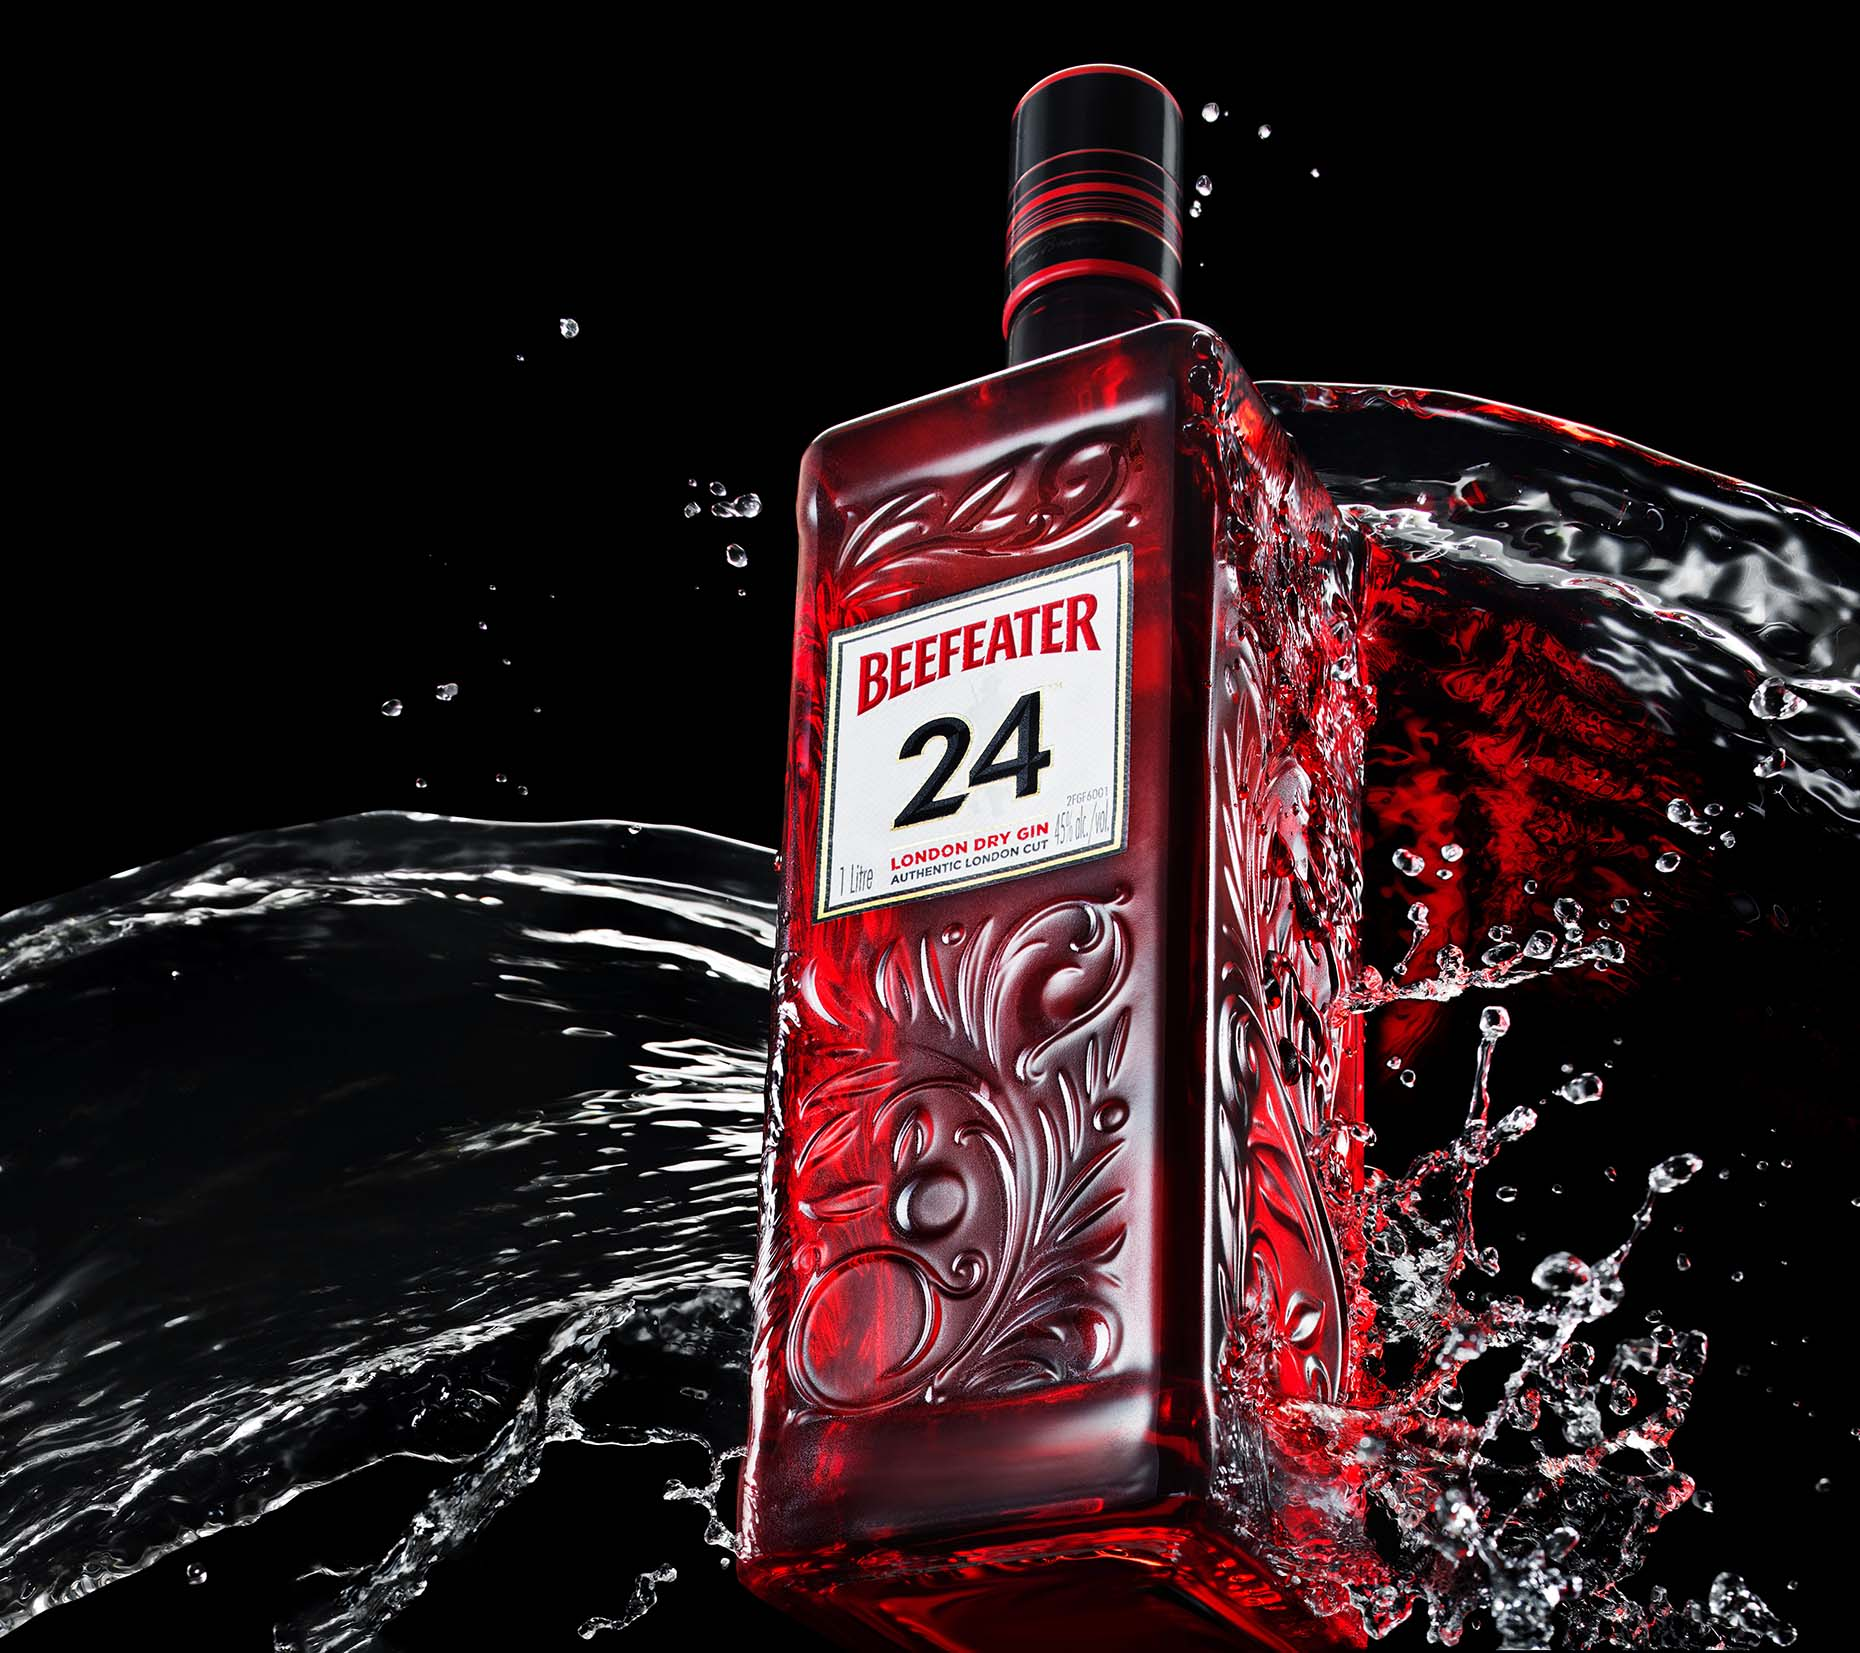 New-york-liquid-phtography-New-york-splash-phtography-Beefeater-gin